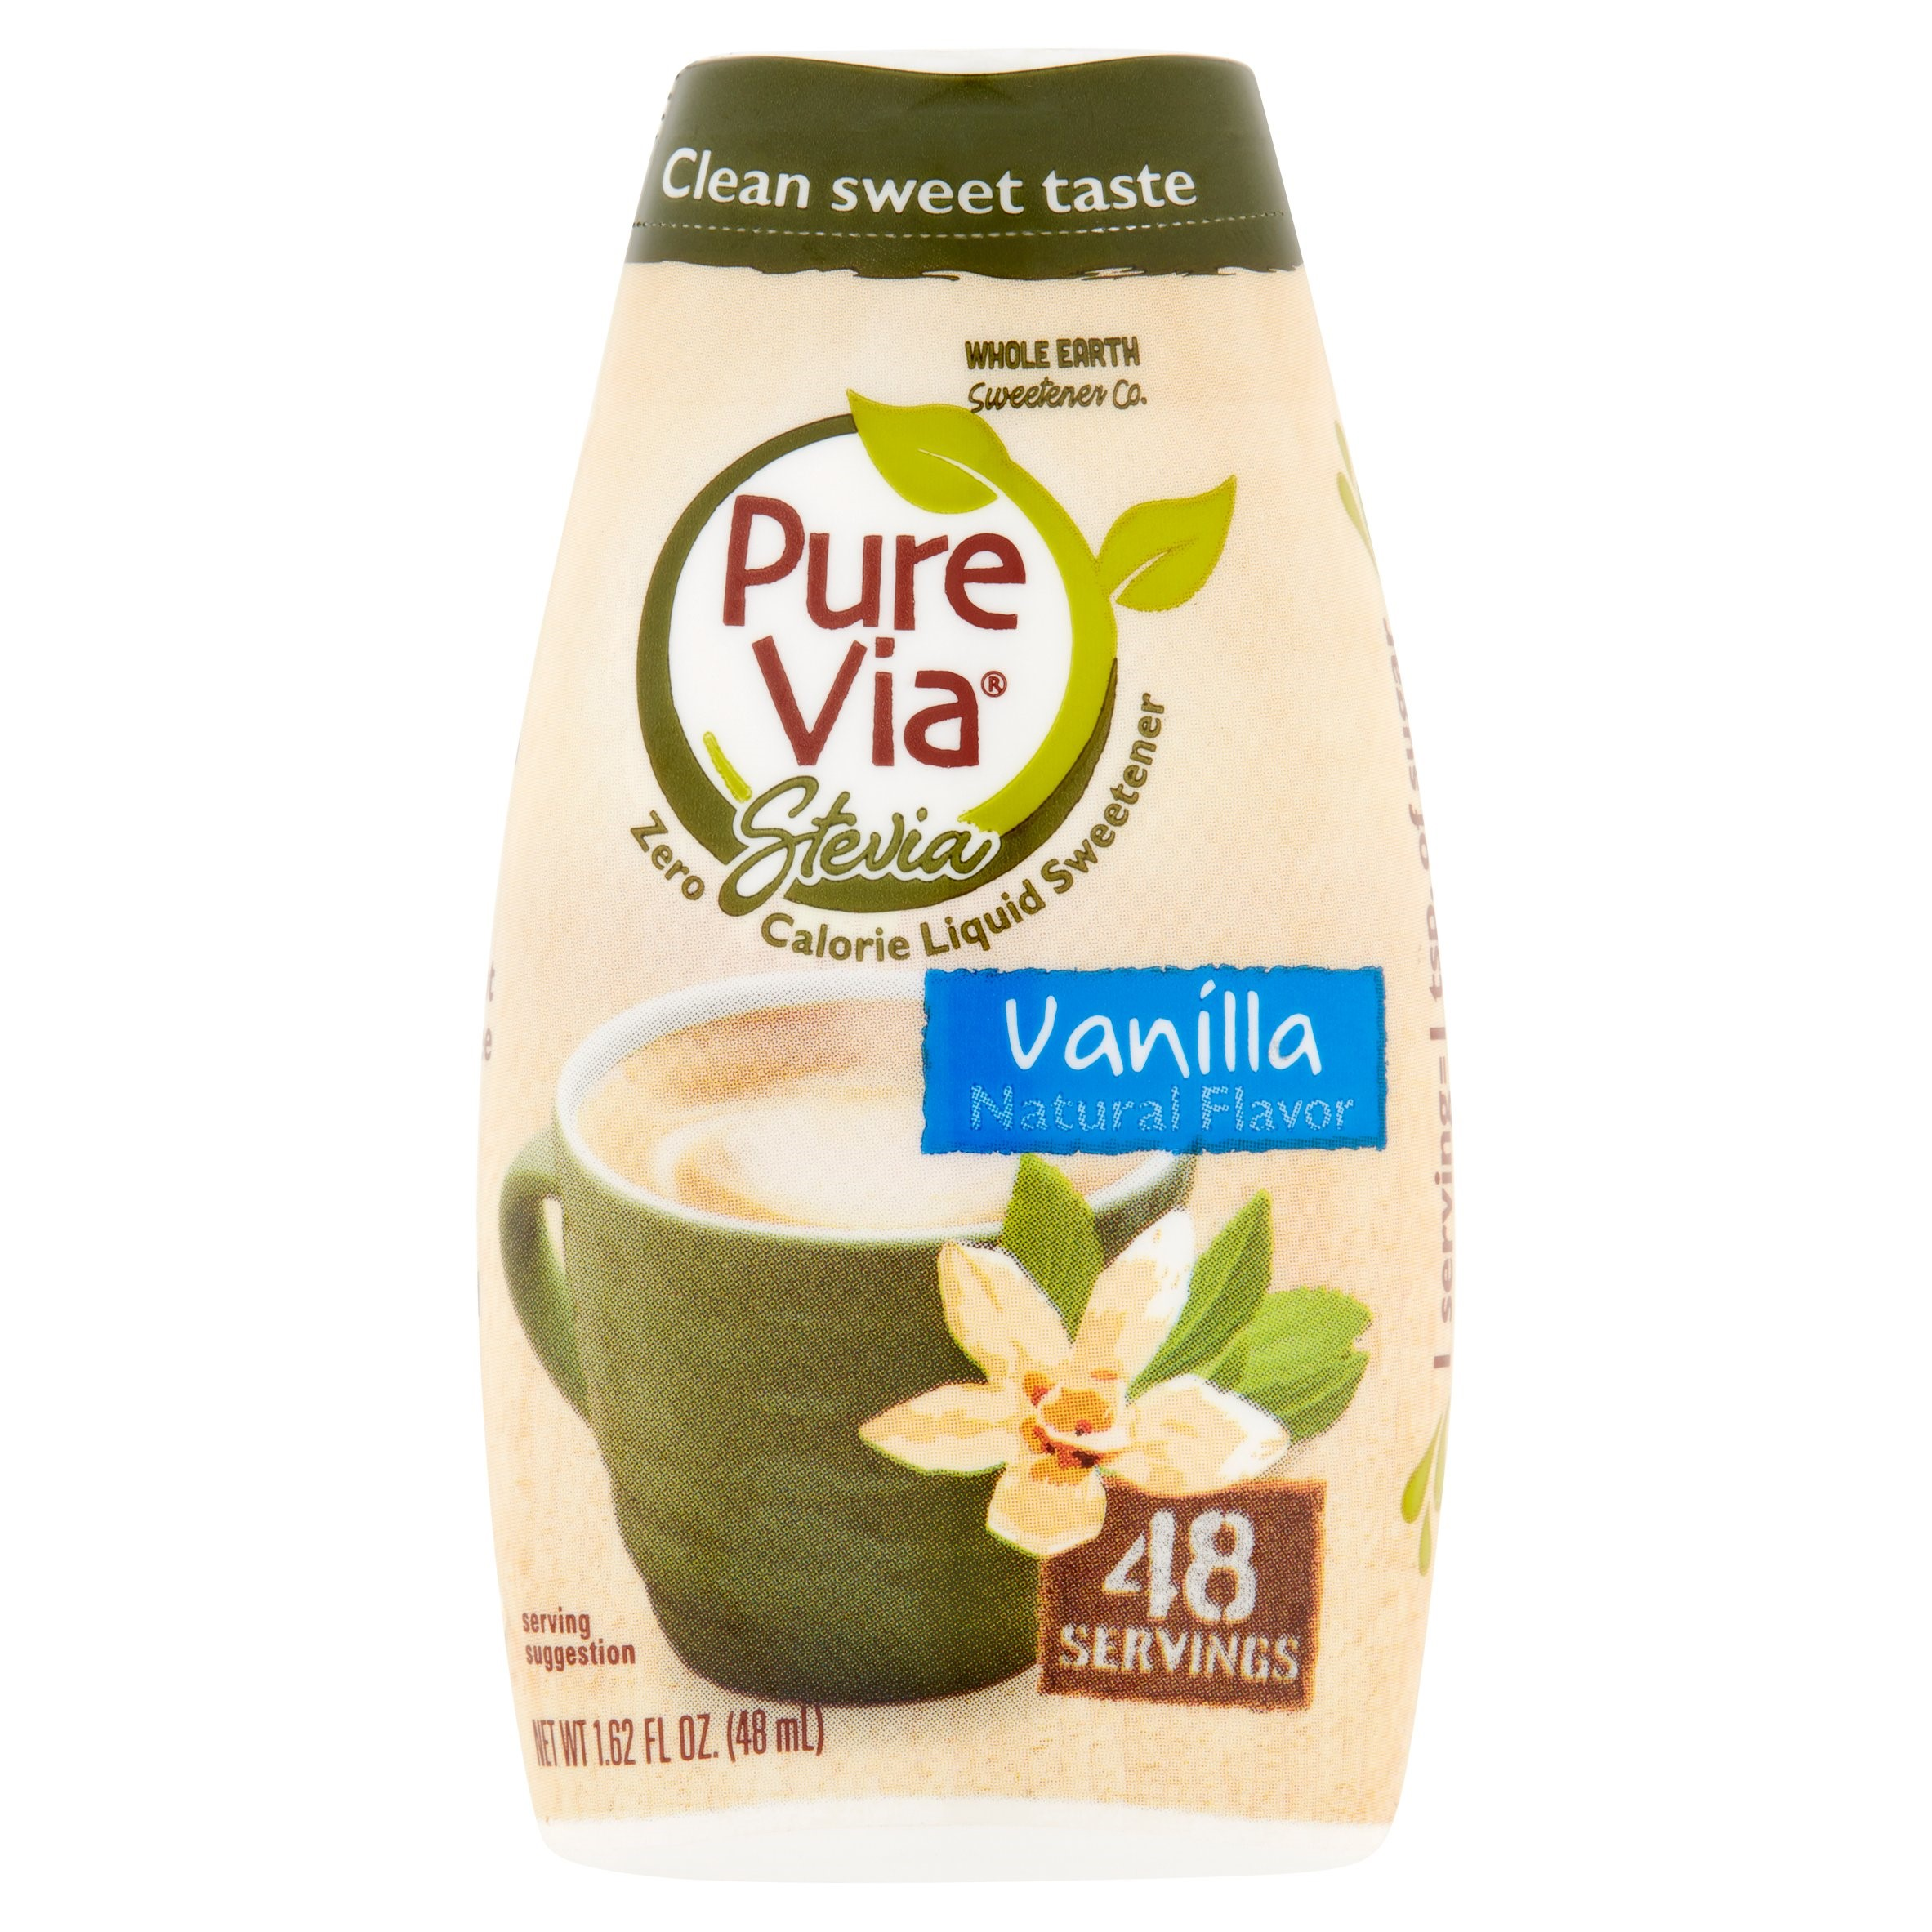 Pure Via Stevia Sweetener Vanilla Simple Squeeze Coffee Sweetener Zero Calorie Sweetener, 1.62 fl oz